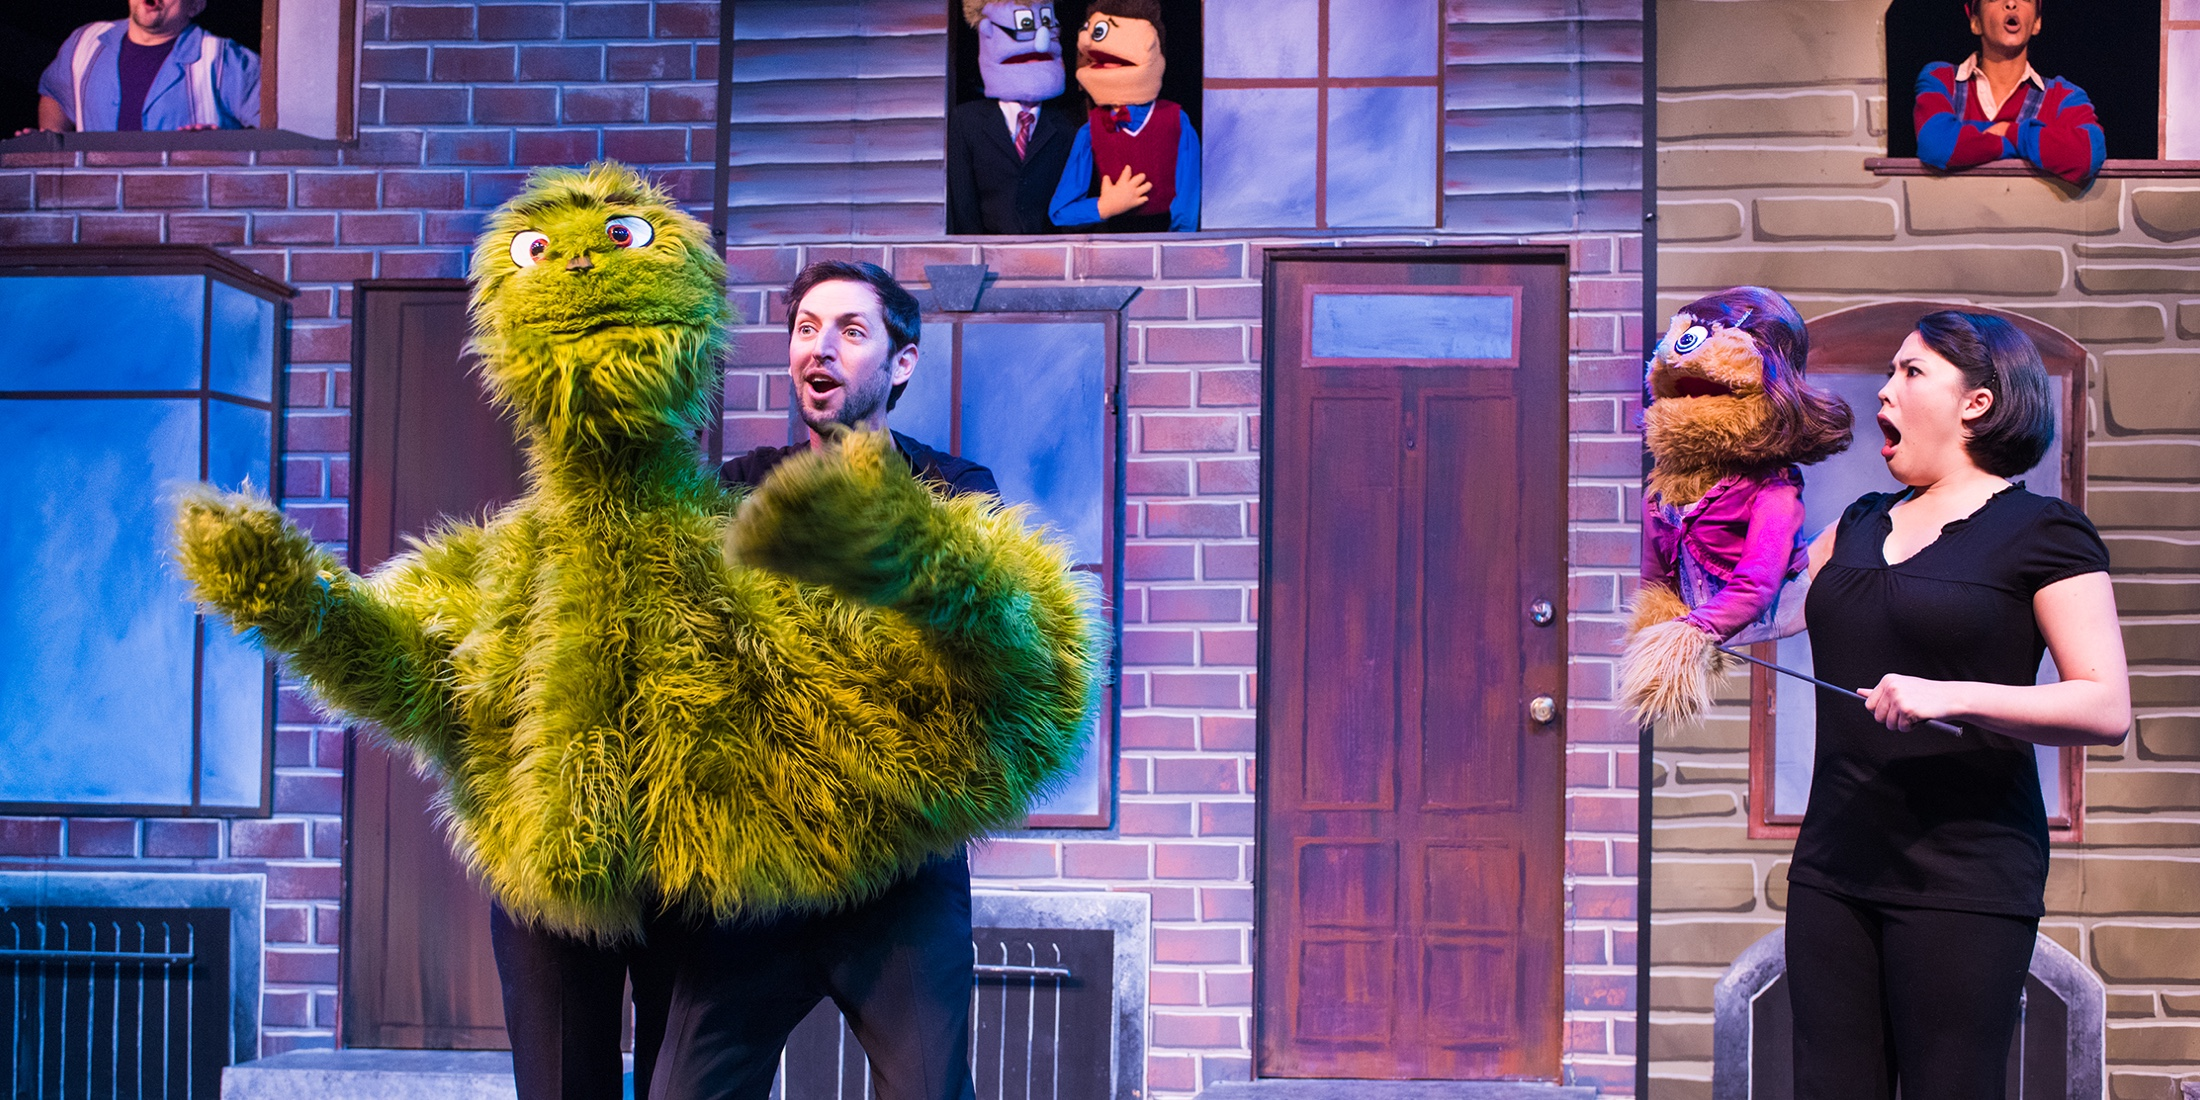 New Conservatory Theatre Center Presents Avenue Q